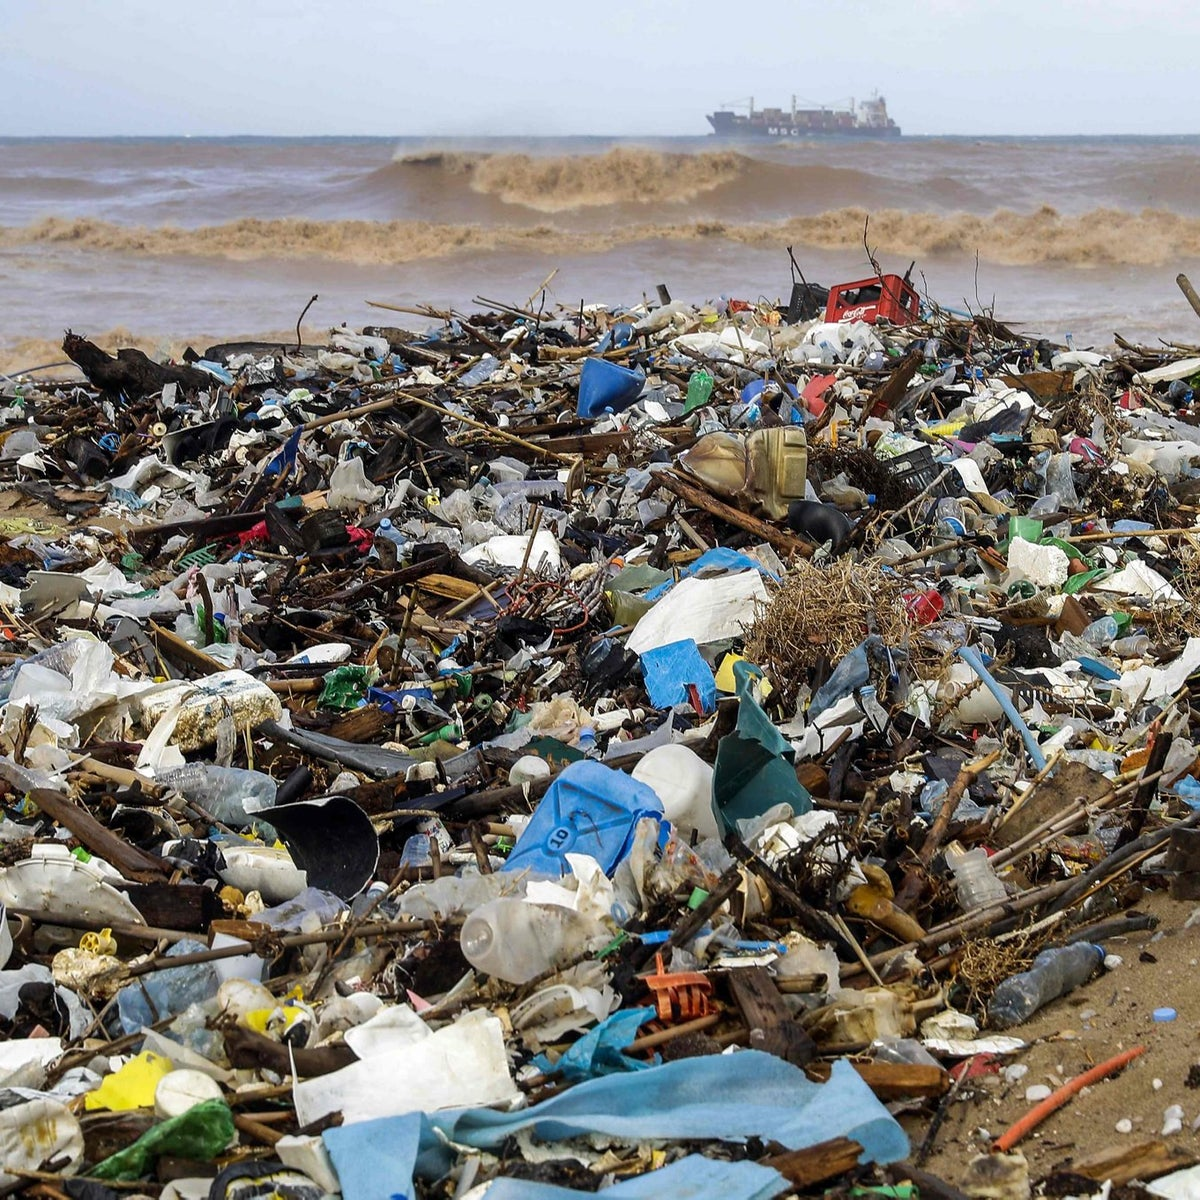 A picture taken on January 23, 2018 shows a view of the beach of the coastal town of Zouk Mosbeh, north of Beirut, covered with garbage and waste that washed and piled along the shore after stormy weather.